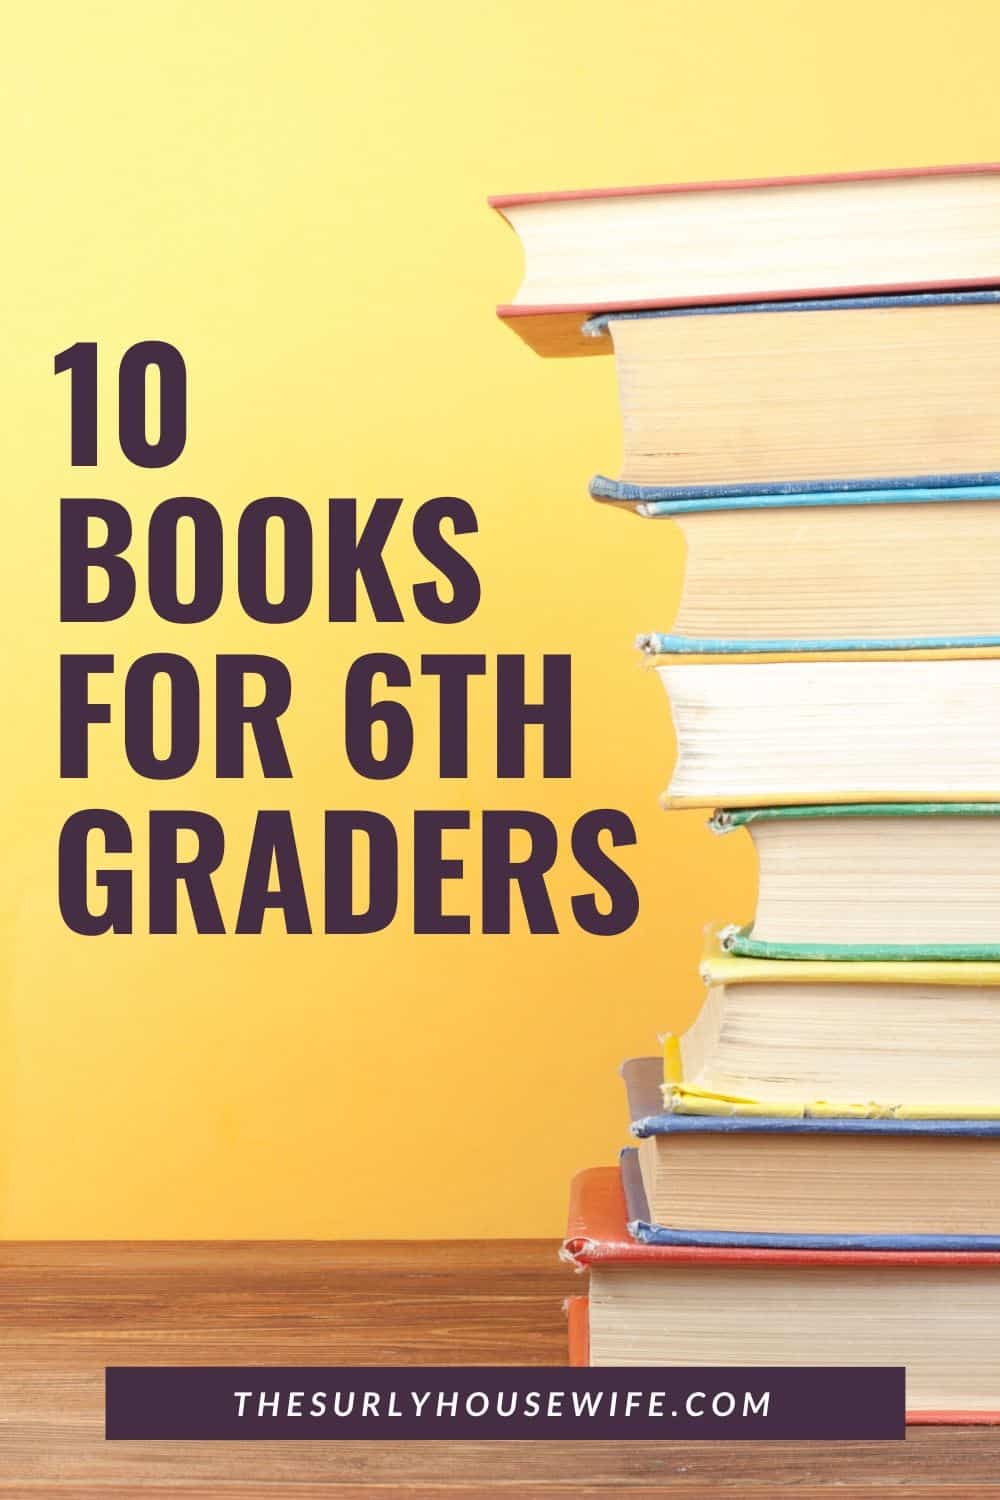 Searching for book recommendations for your 6th grader? Does your 12 year old or 6th grader need a good book? Don't miss this list which contains some of the best books for sixth graders. They include chapter books, fantasy, nonfiction, poetry, realistic fiction, and historical fiction. They are perfect for reading aloud, independent reading, or a summer reading list!